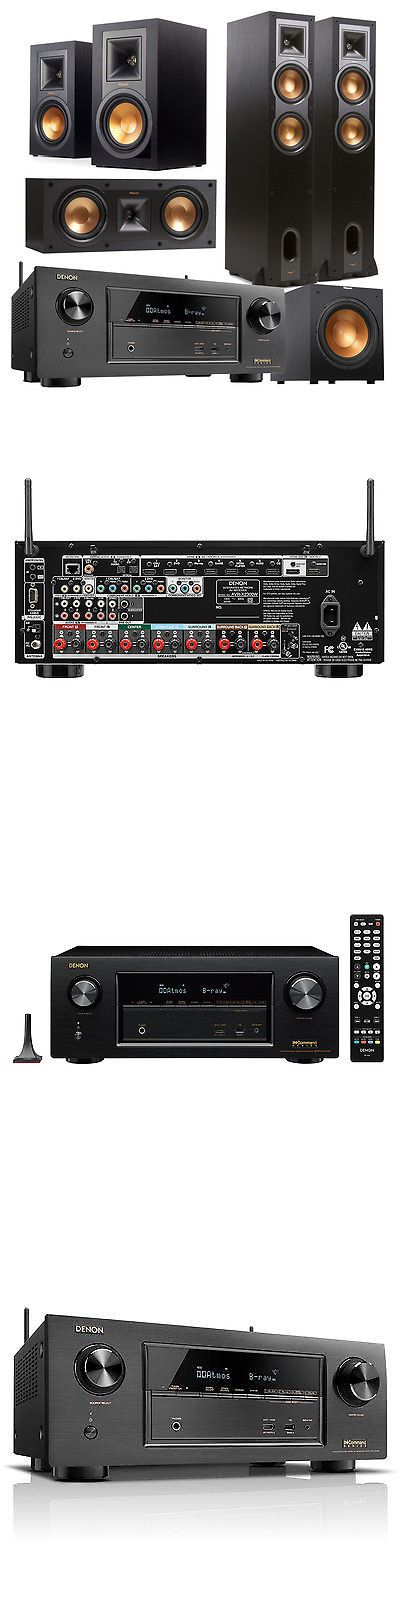 Home Theater Receivers: Denon Avrx2300w 7.2 Channel A V Receiver And Klipsch 5.1 Speaker Package (Black) -> BUY IT NOW ONLY: $1599 on eBay!